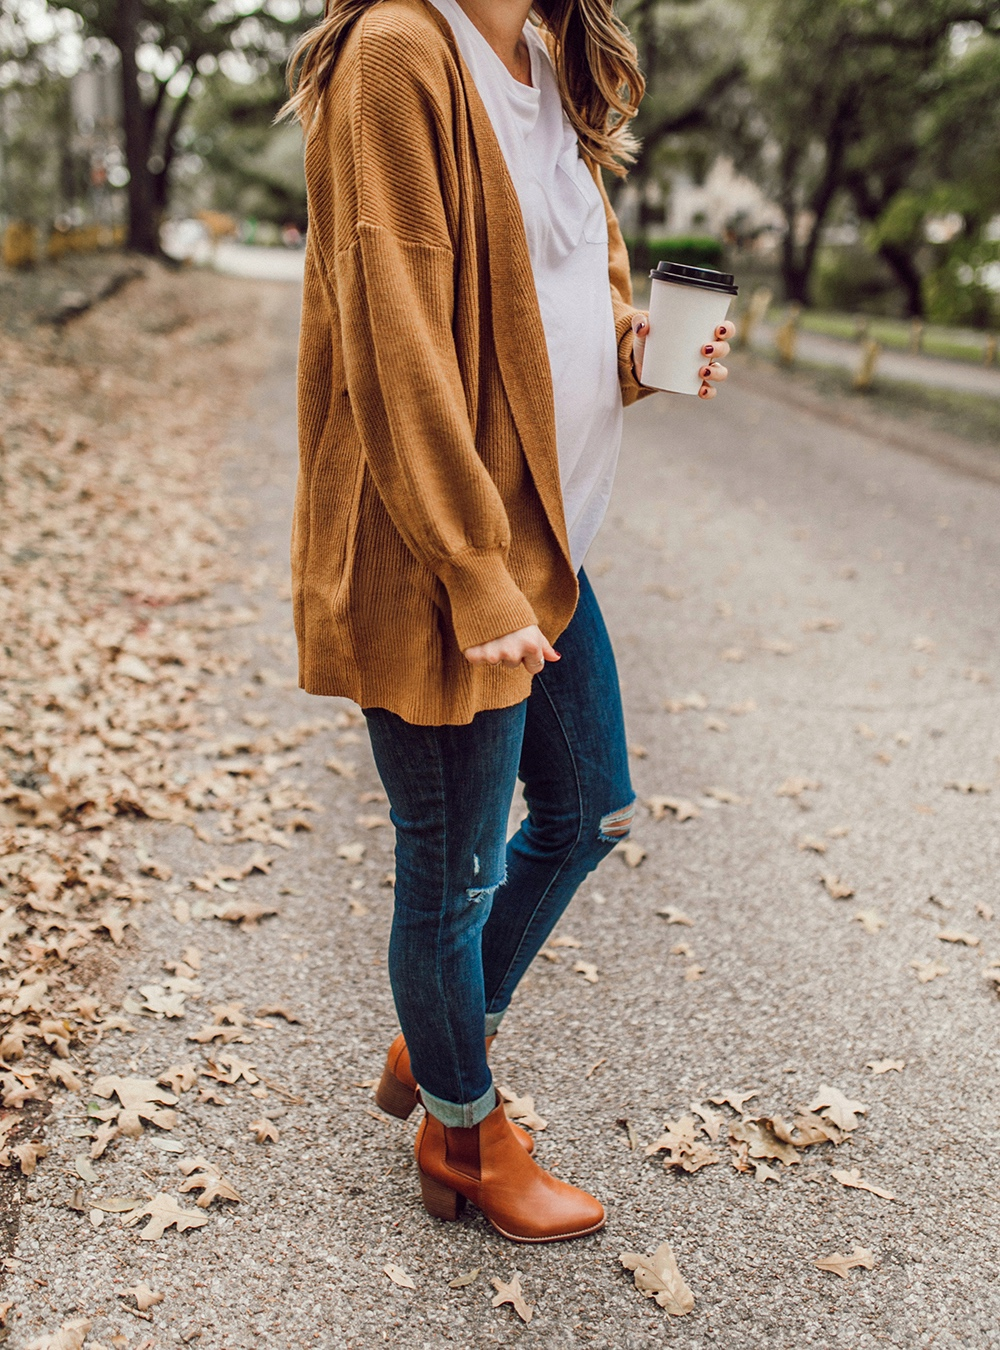 livvyland-blog-olivia-watson-austin-texas-fashion-lifestyle-blogger-mustard-cardigan-outfit-madewell-regan-boots-cyber-monday-nordstrom-sale-4